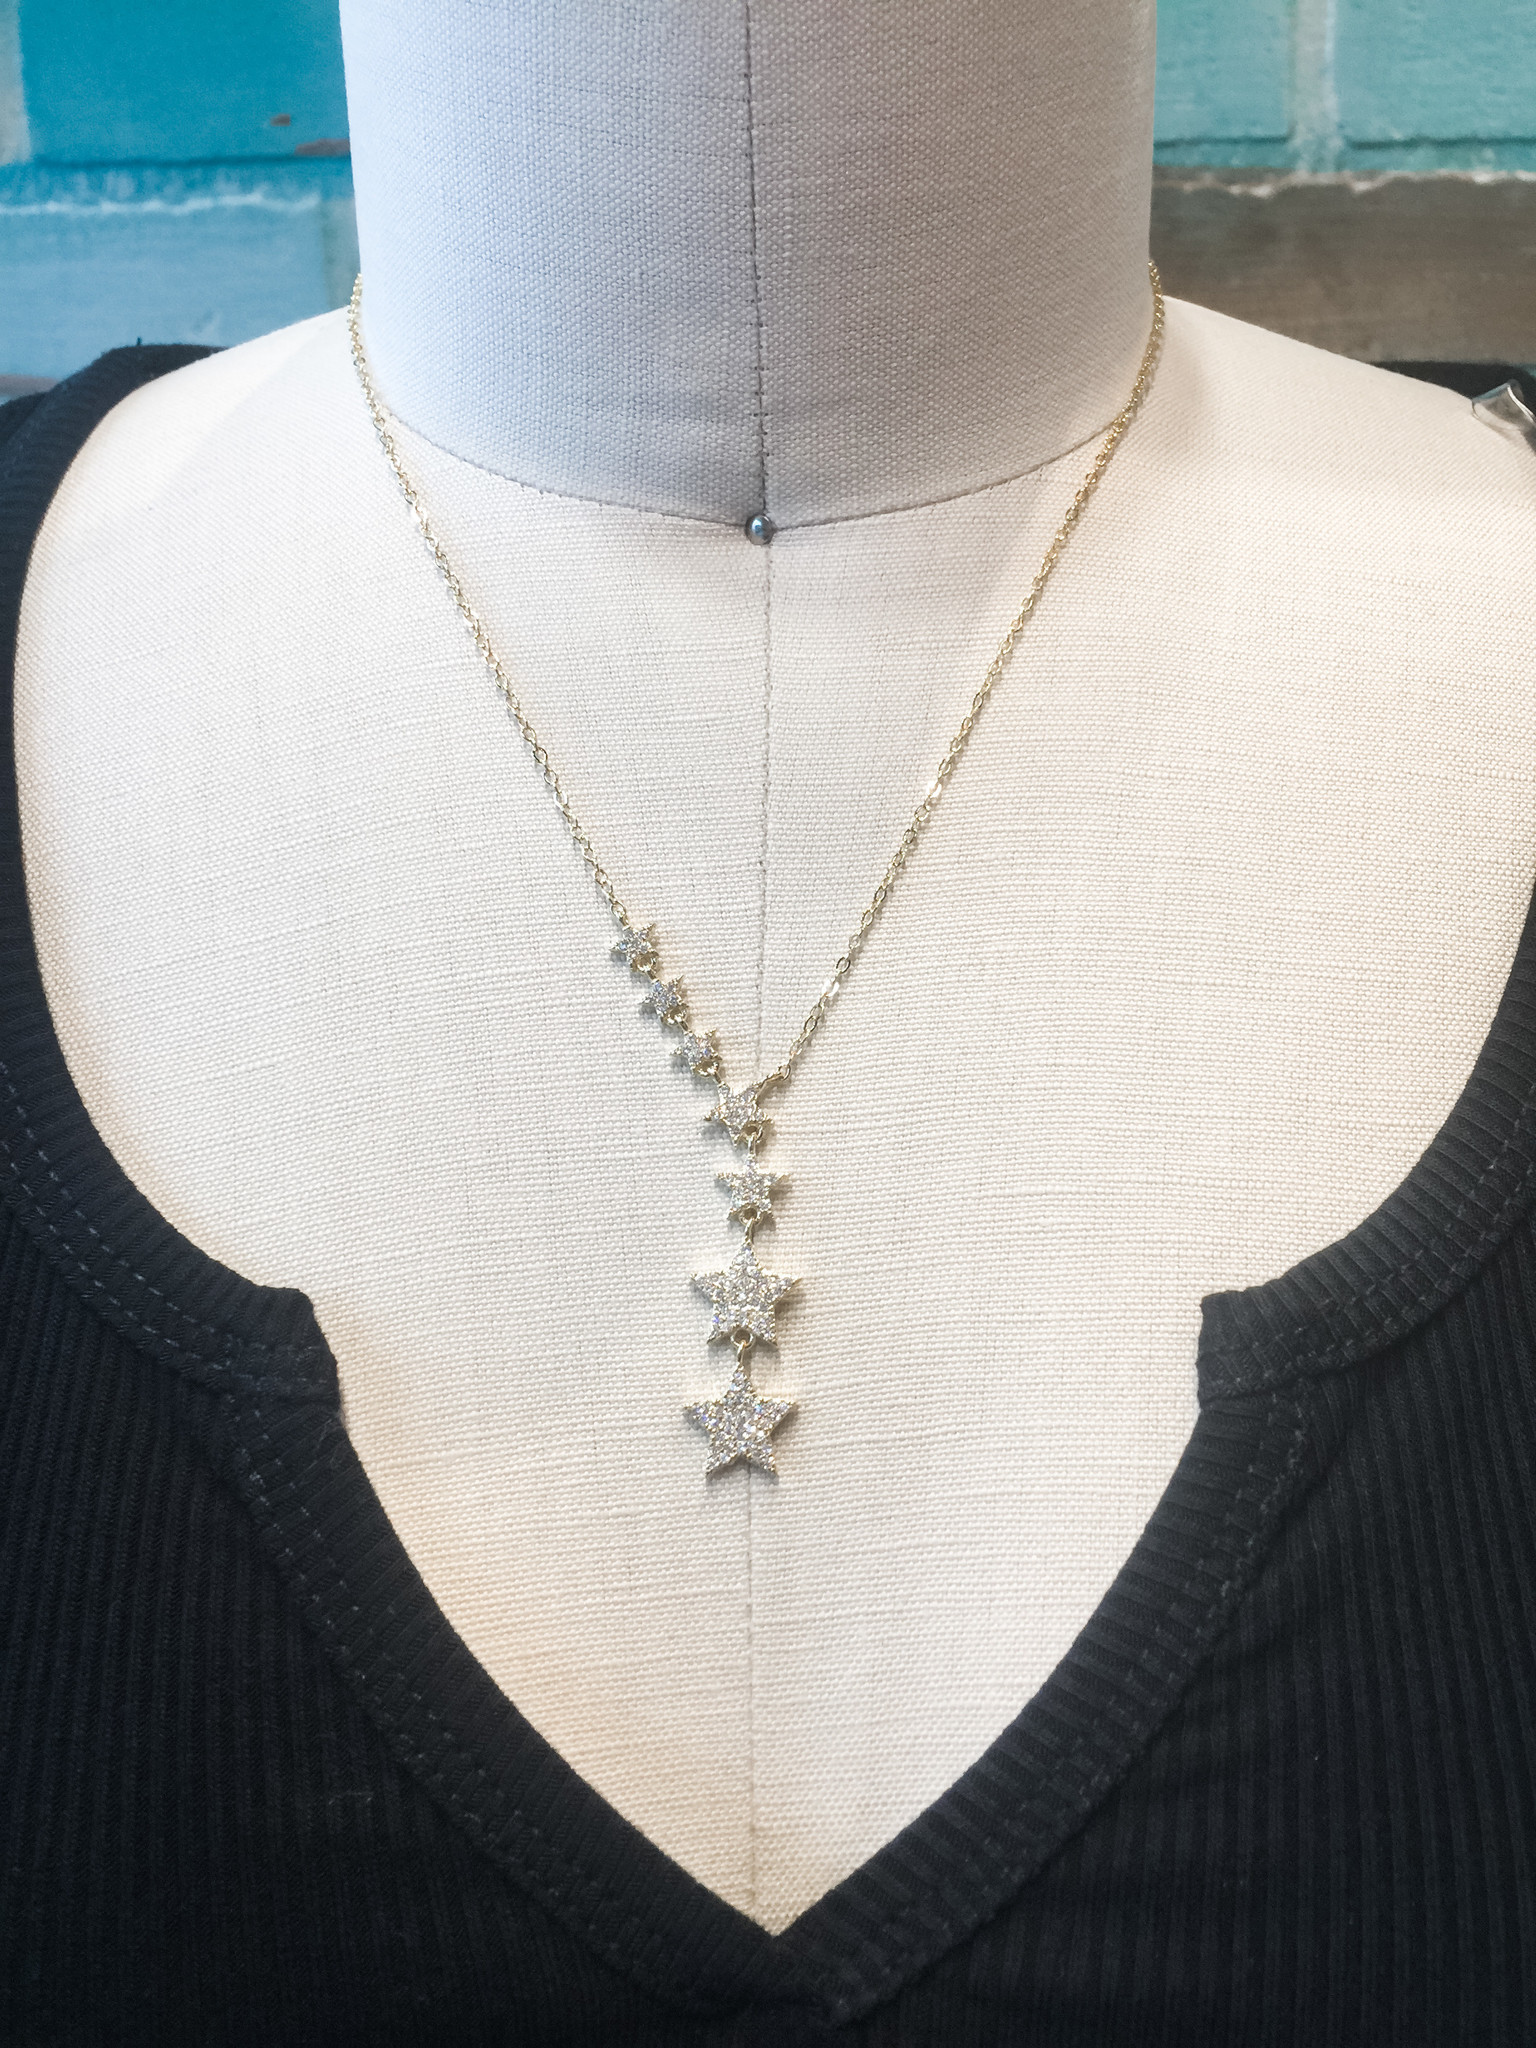 Mary Kathryn Designs Starlight Lariat Necklace